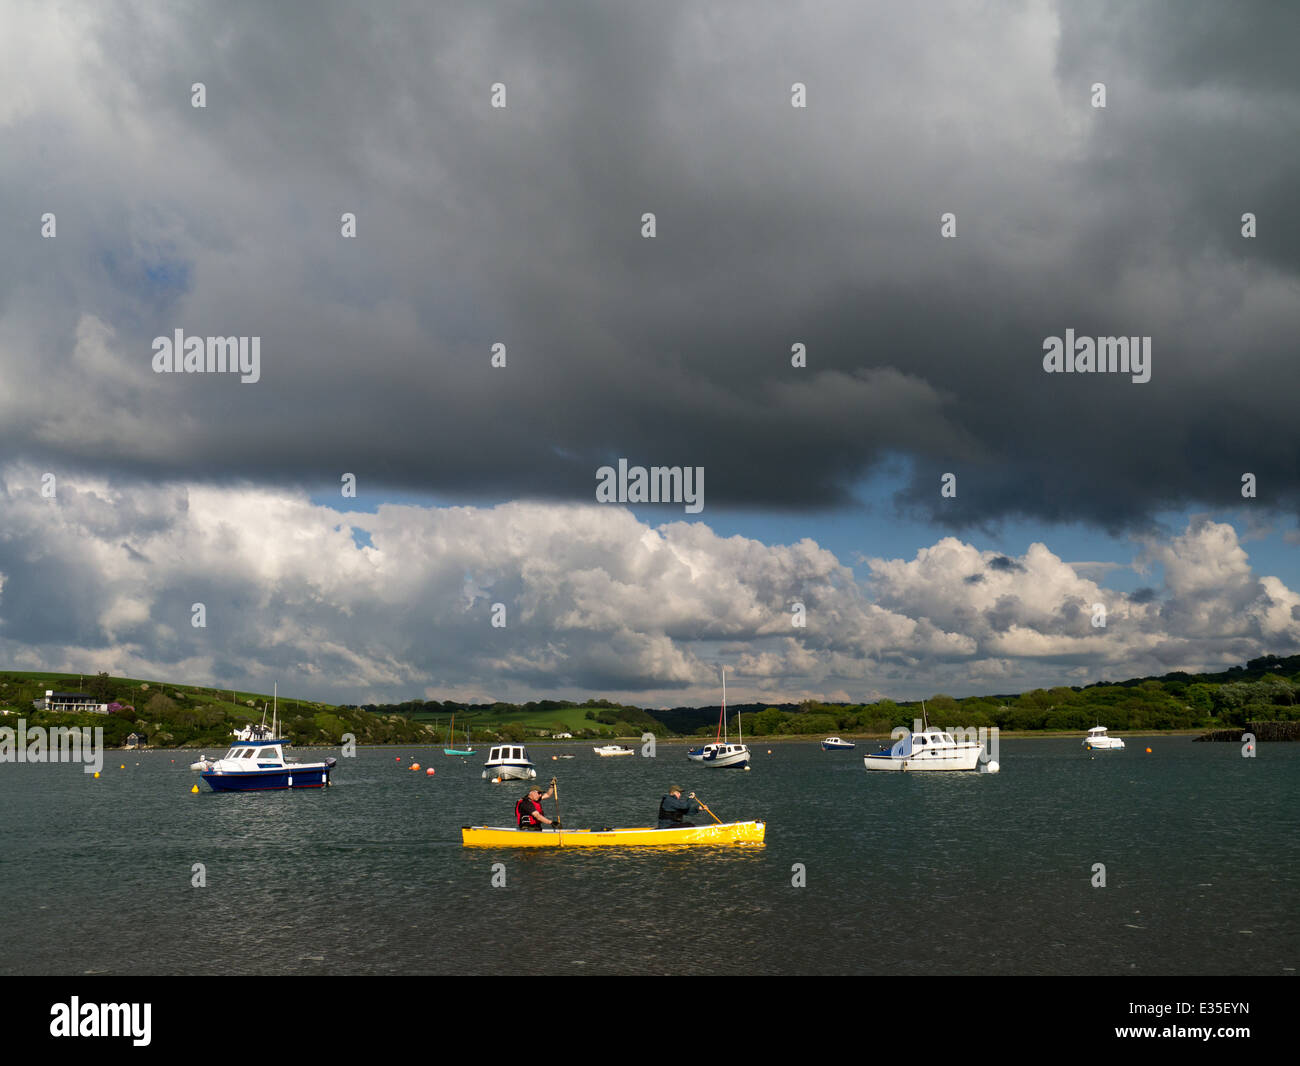 boats, including a yellow canoe, in Newport Bay, Pembrokeshire, Wales - Stock Image